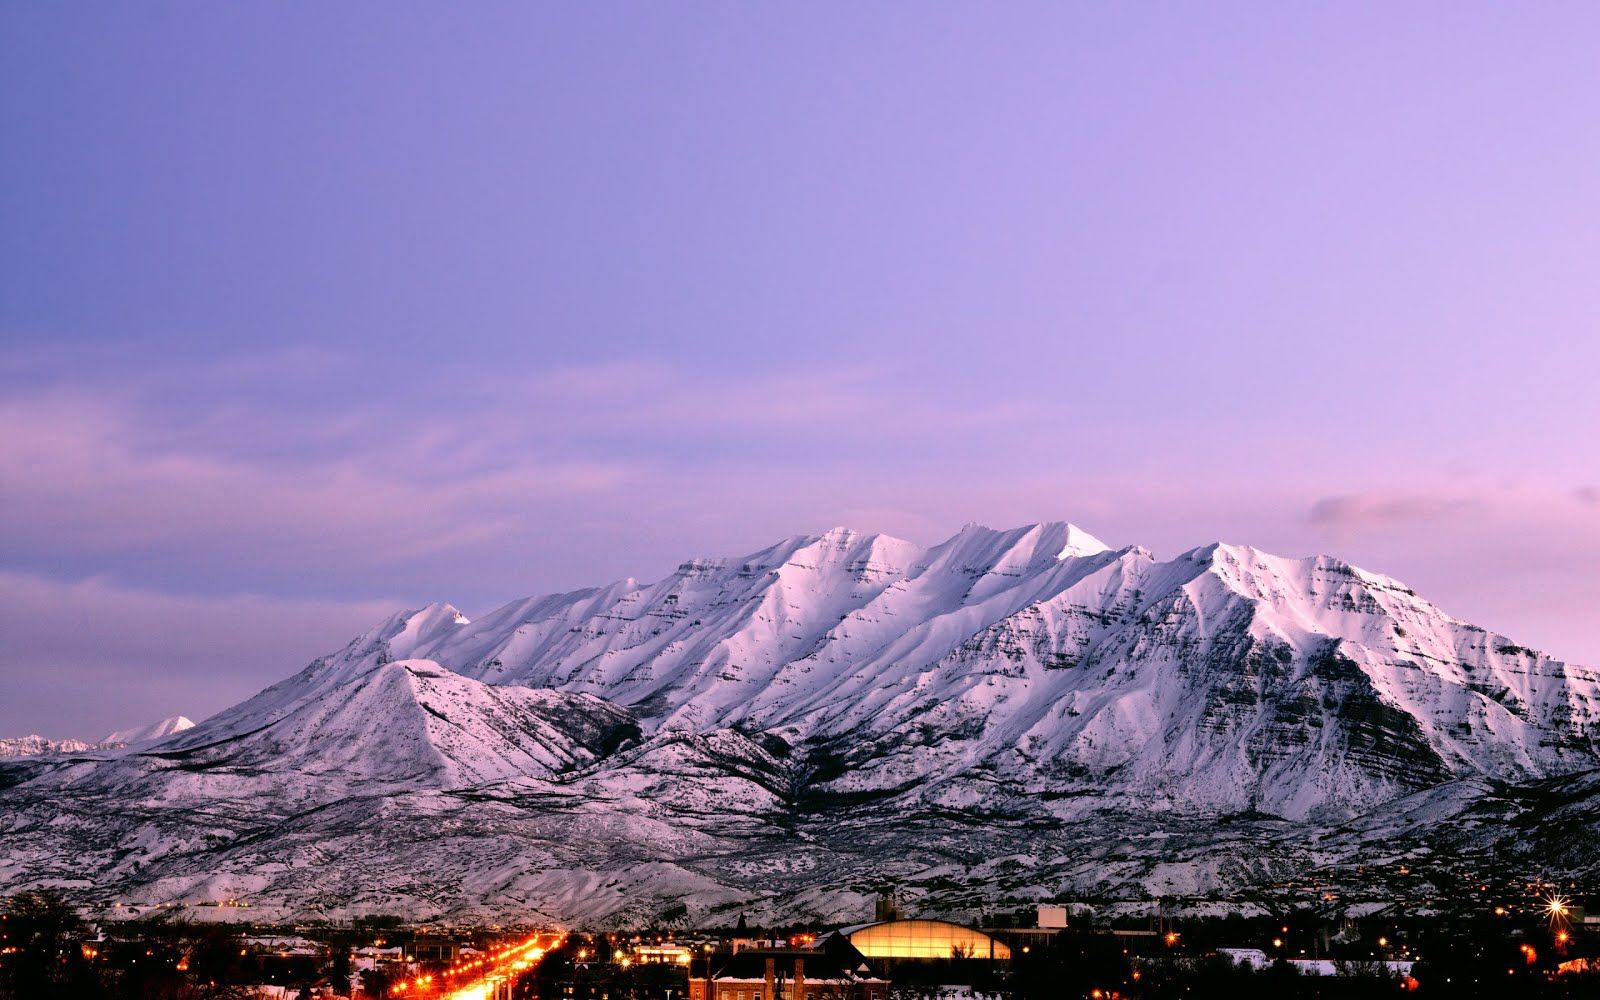 utah-mount-timpanogos-at-dusk.jpg